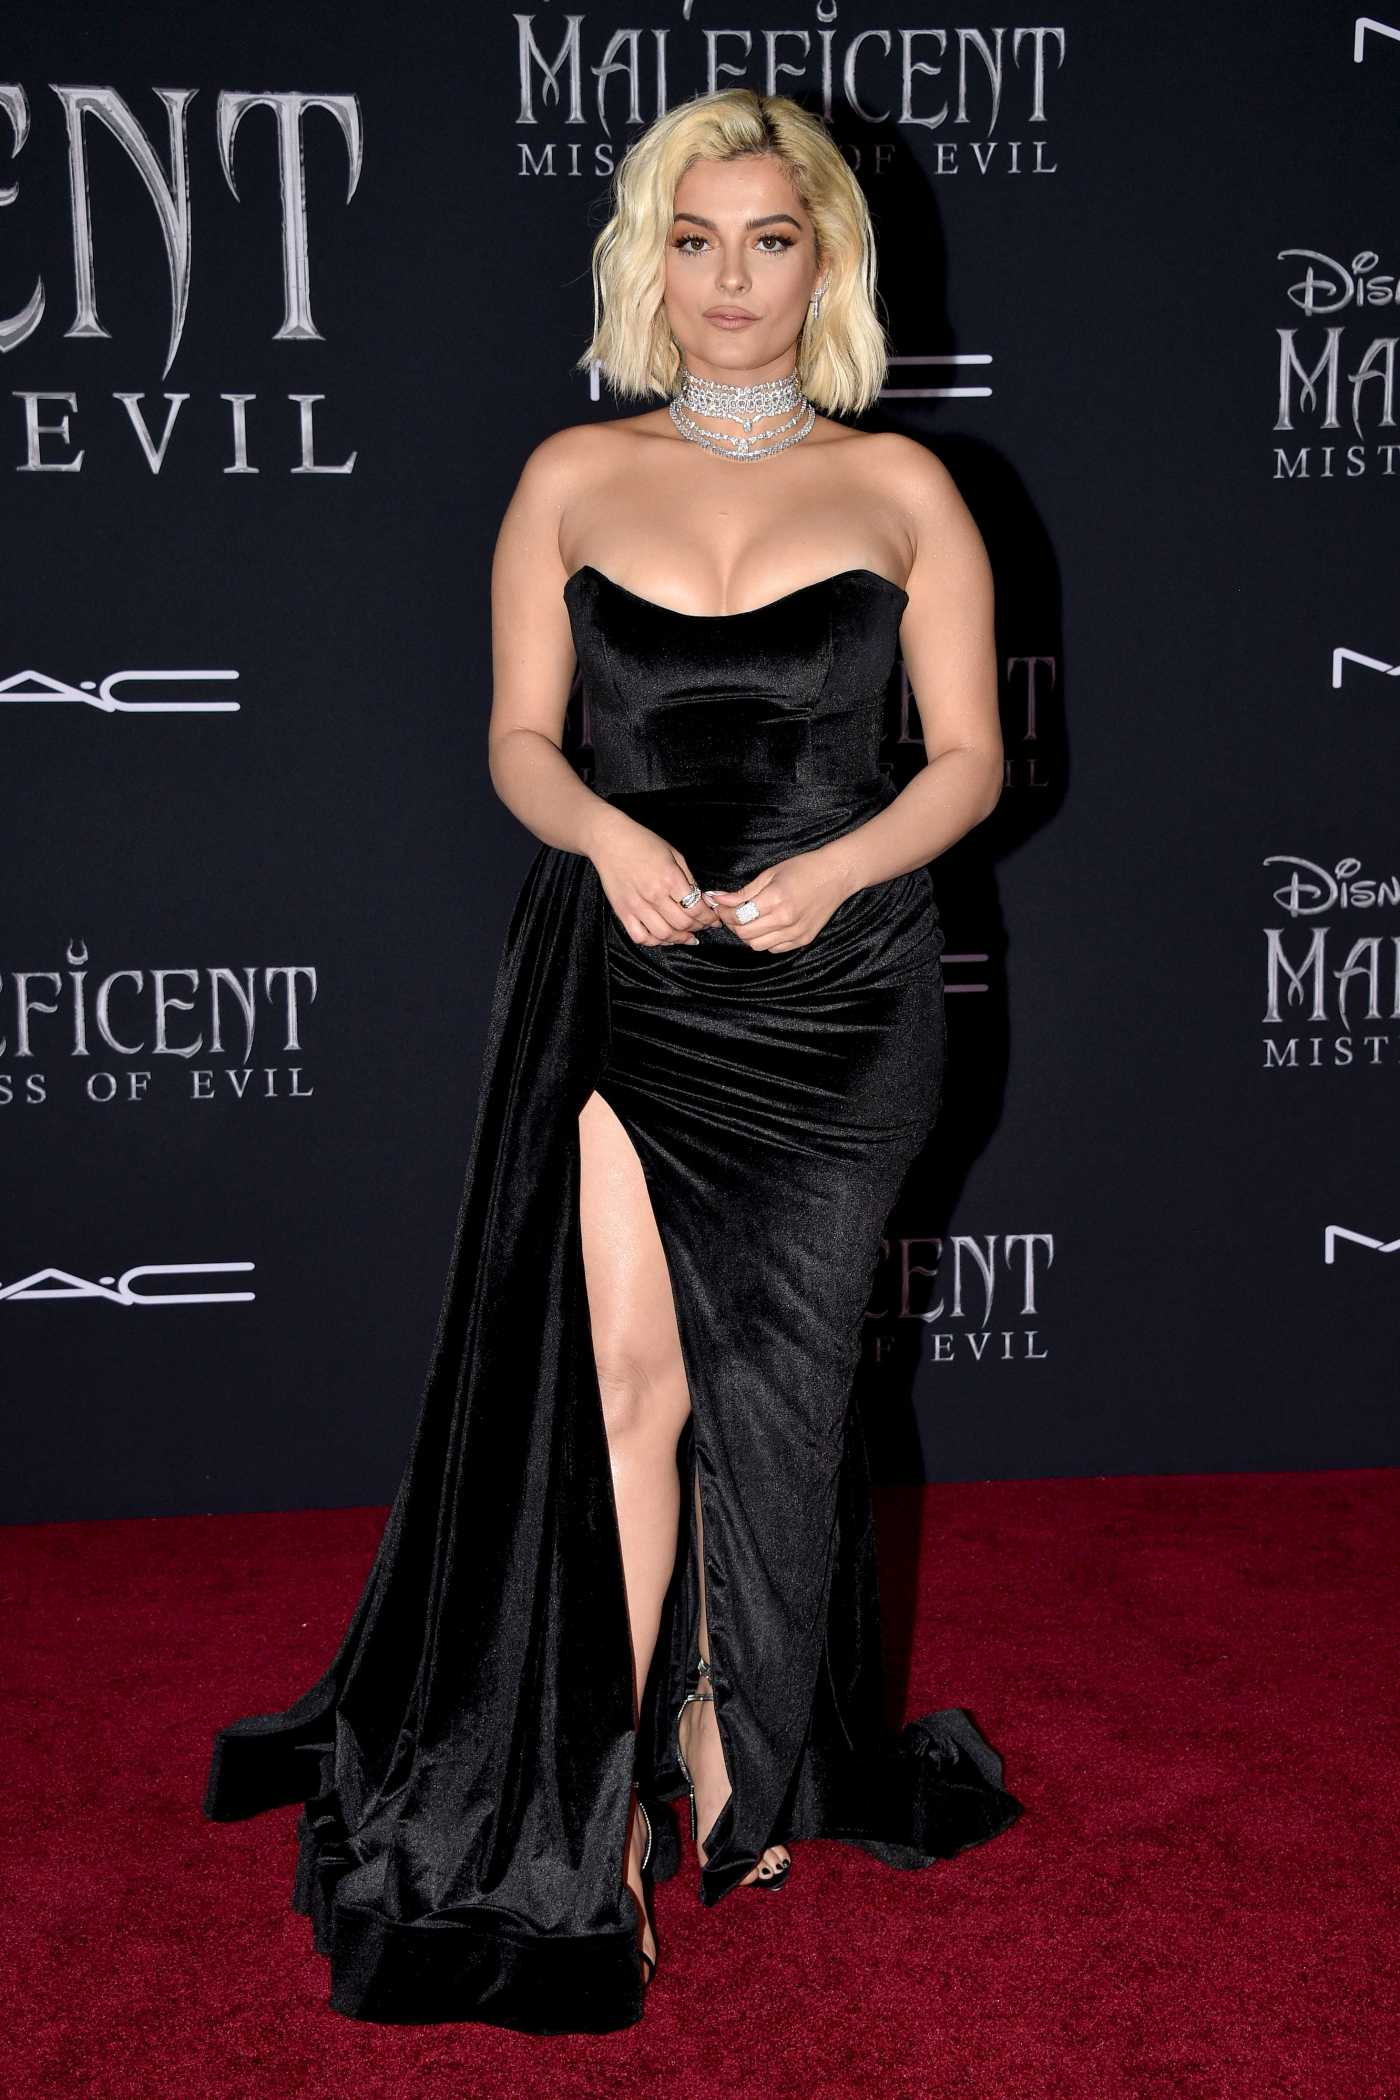 Bebe Rexha Attends the Maleficent: Mistress of Evil Premiere at El Capitan Theatre in Los Angeles 09/30/2019